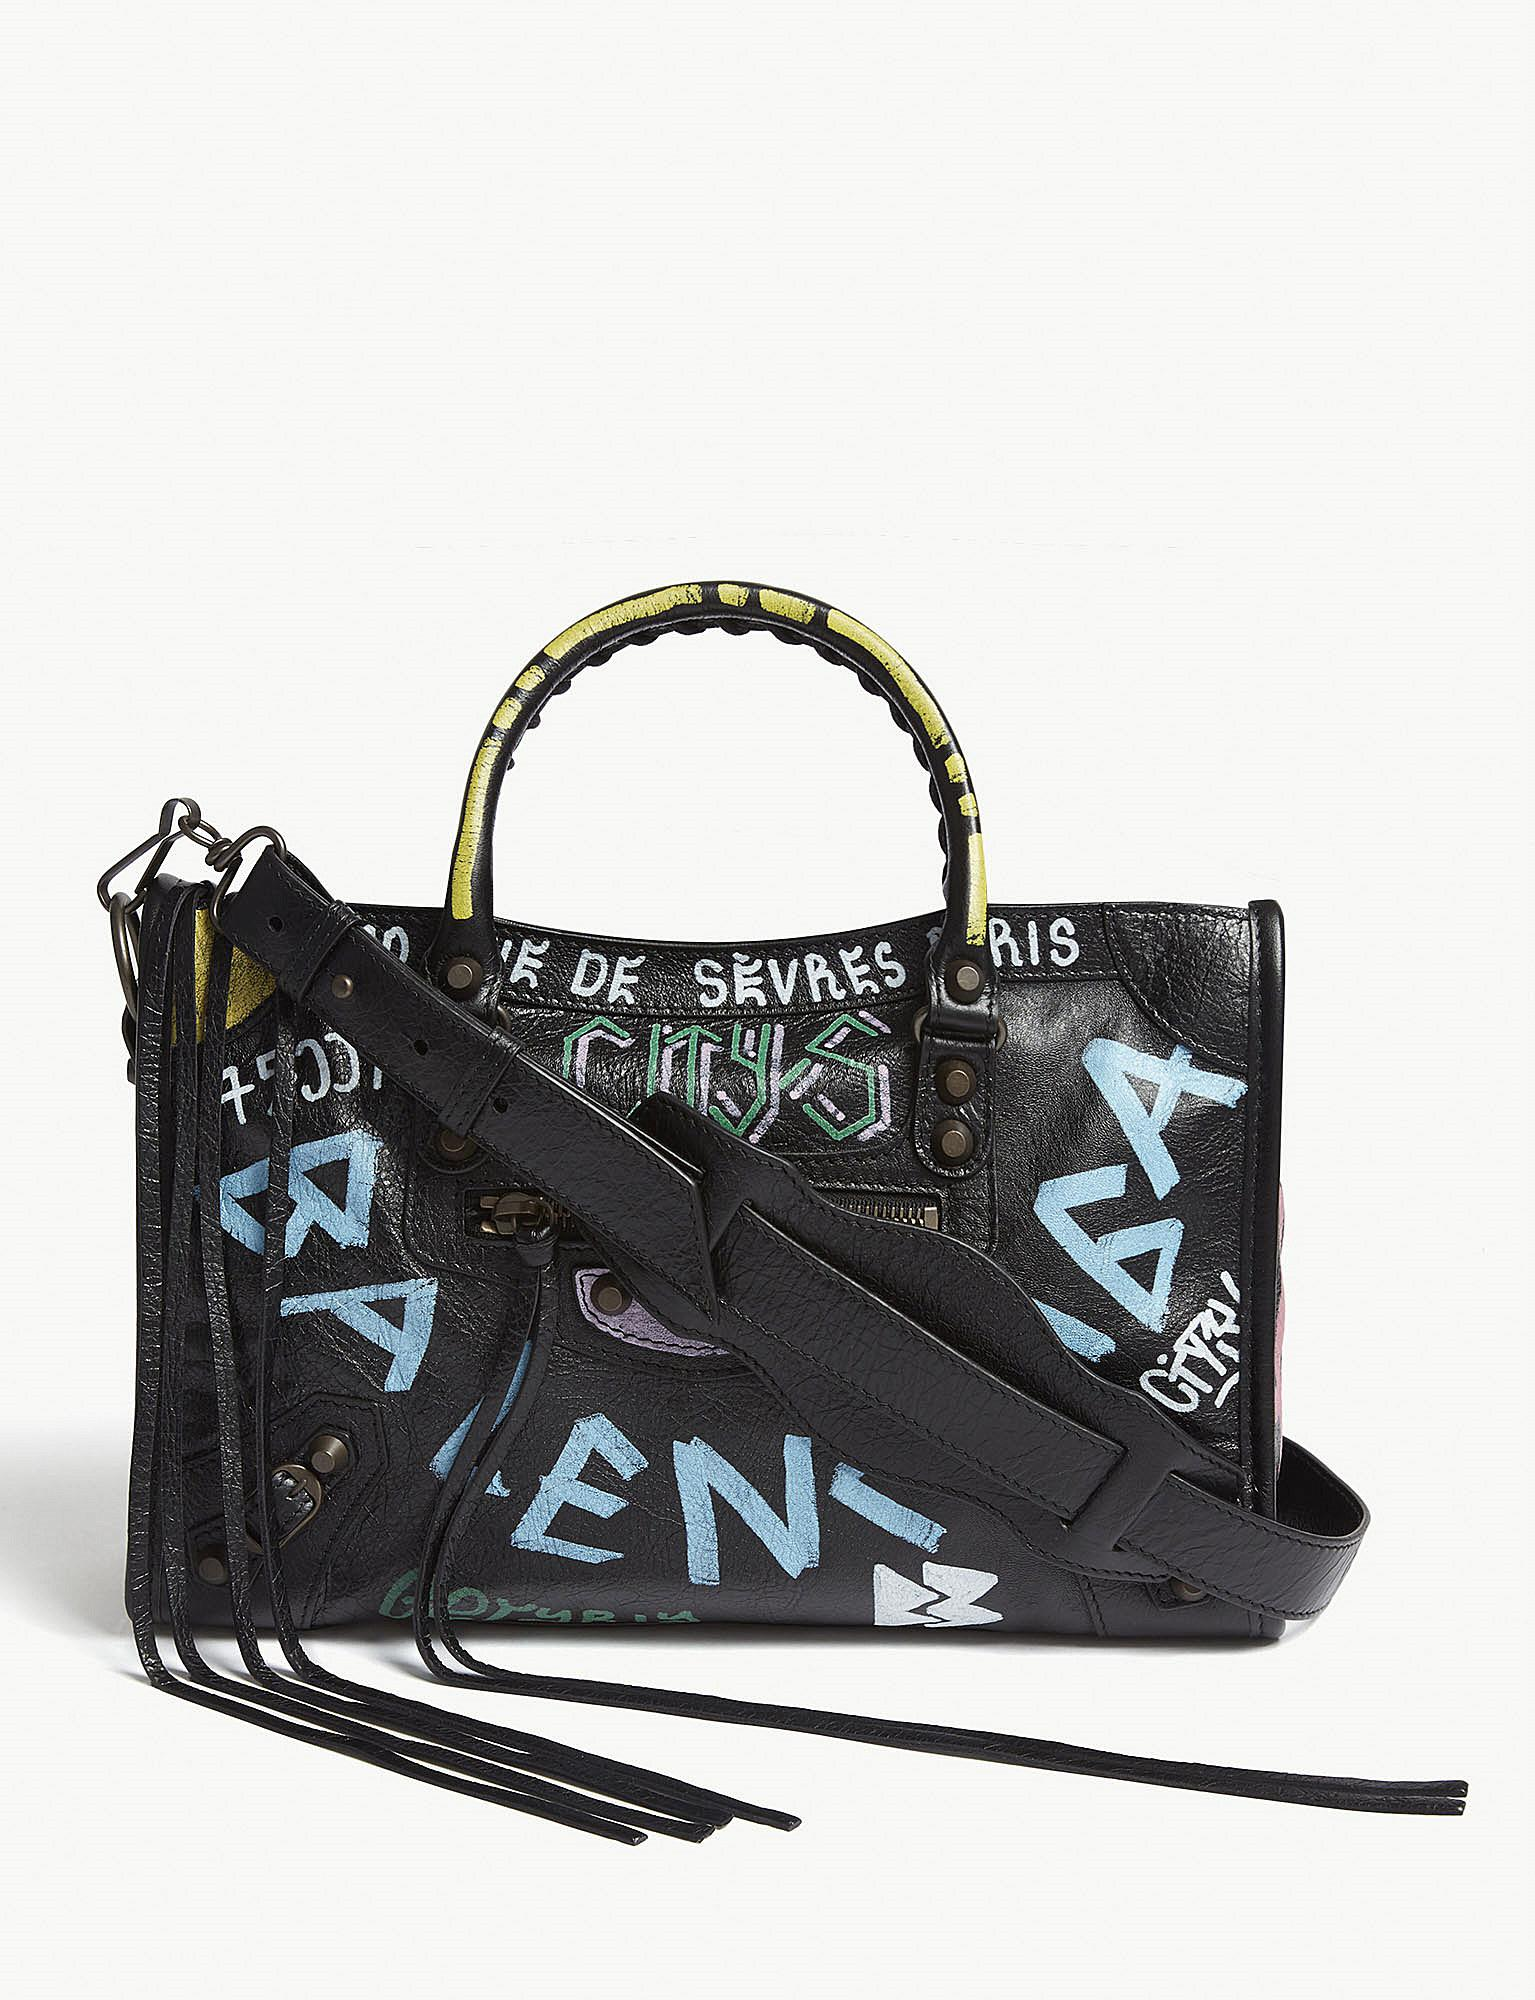 886d3b9e5783f Balenciaga Ladies Black And Blue City Graffiti Print Leather ...